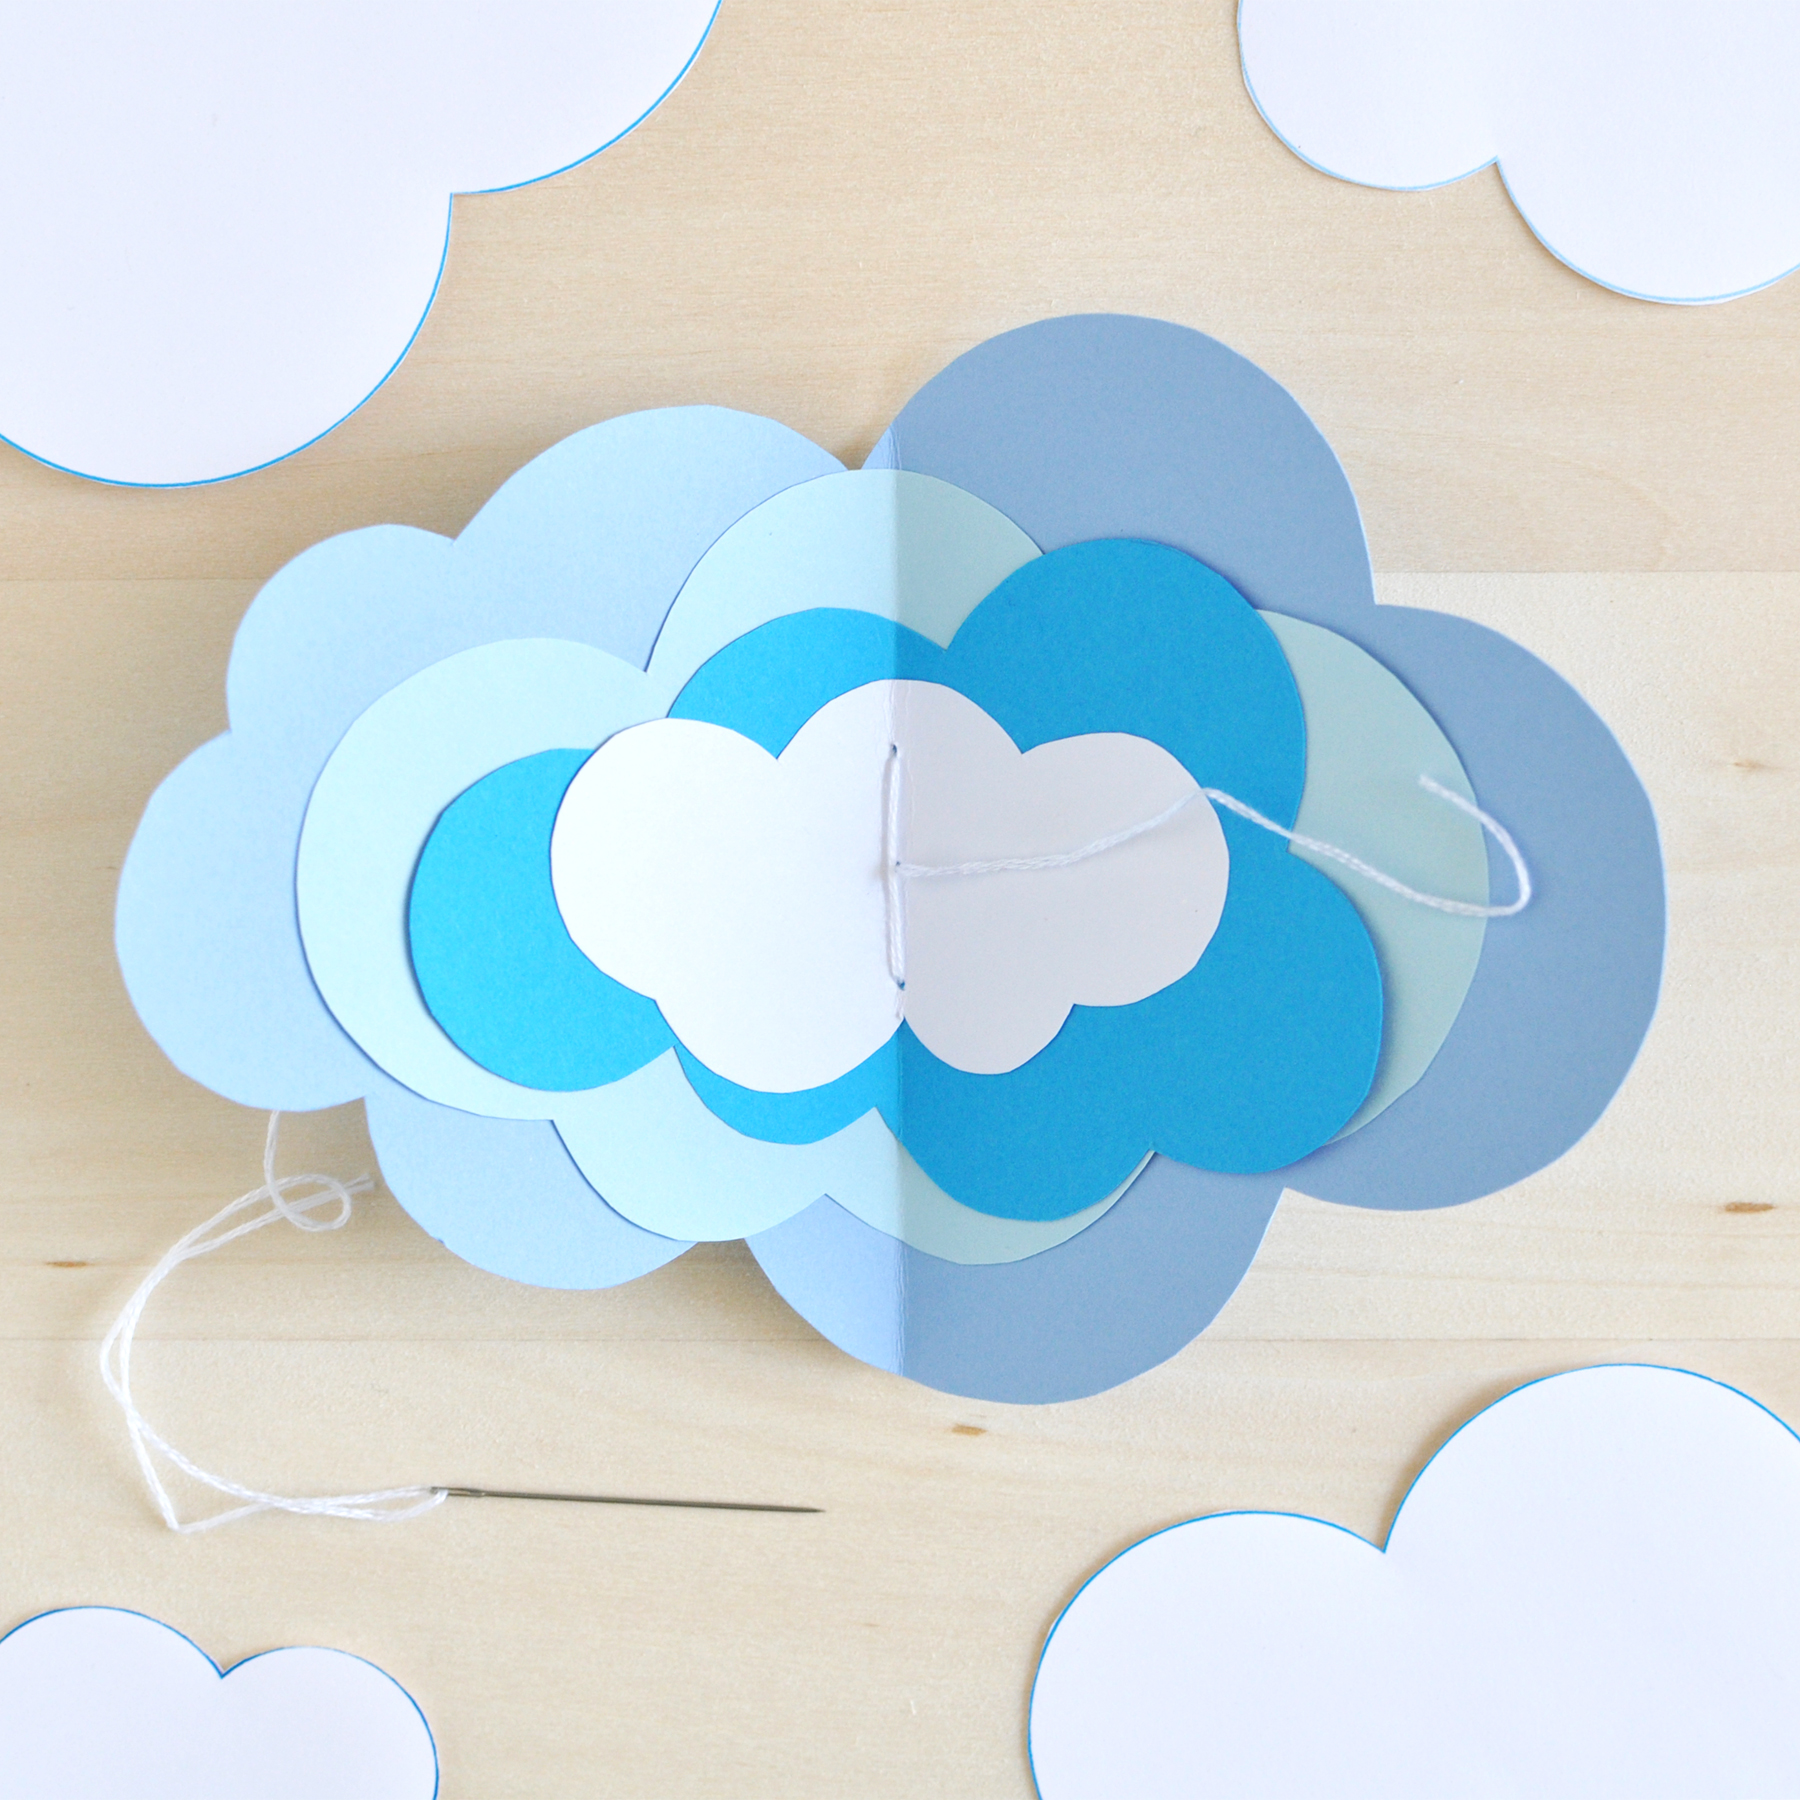 Make-Your-Own-Mini-Cloud-Journal---Image9.jpg